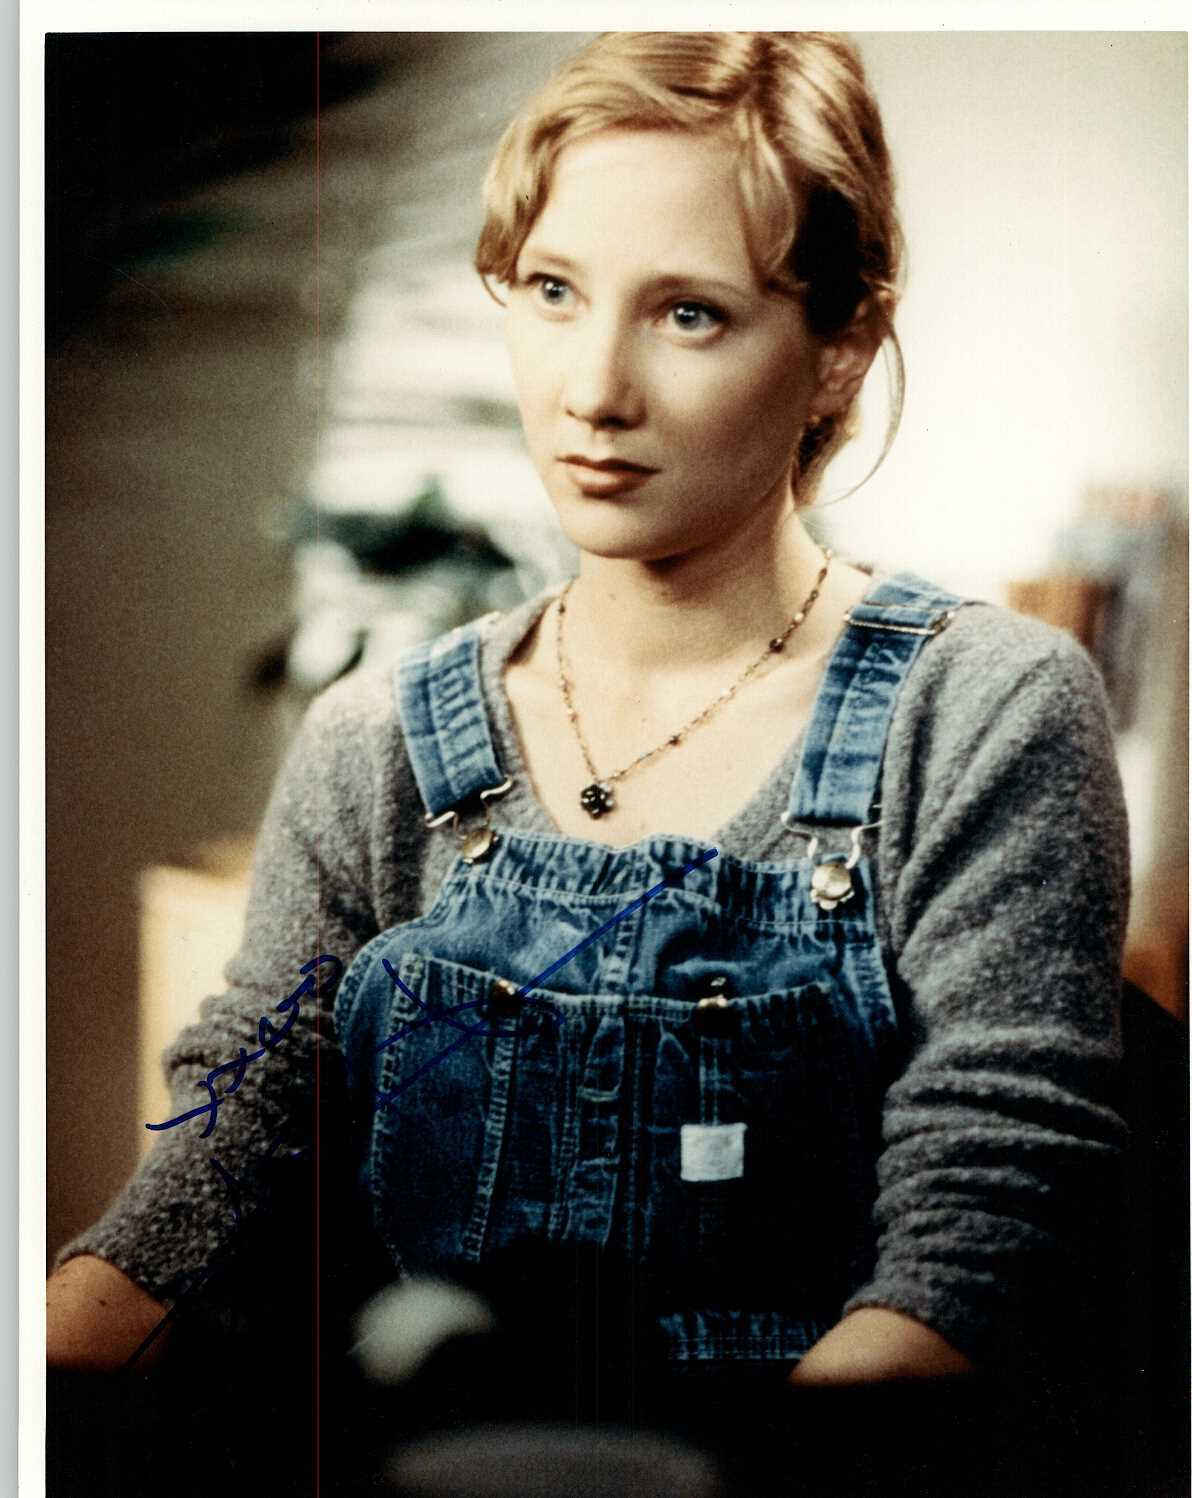 Primary image for Anne Heche Signed Autographed Glossy 8x10 Photo